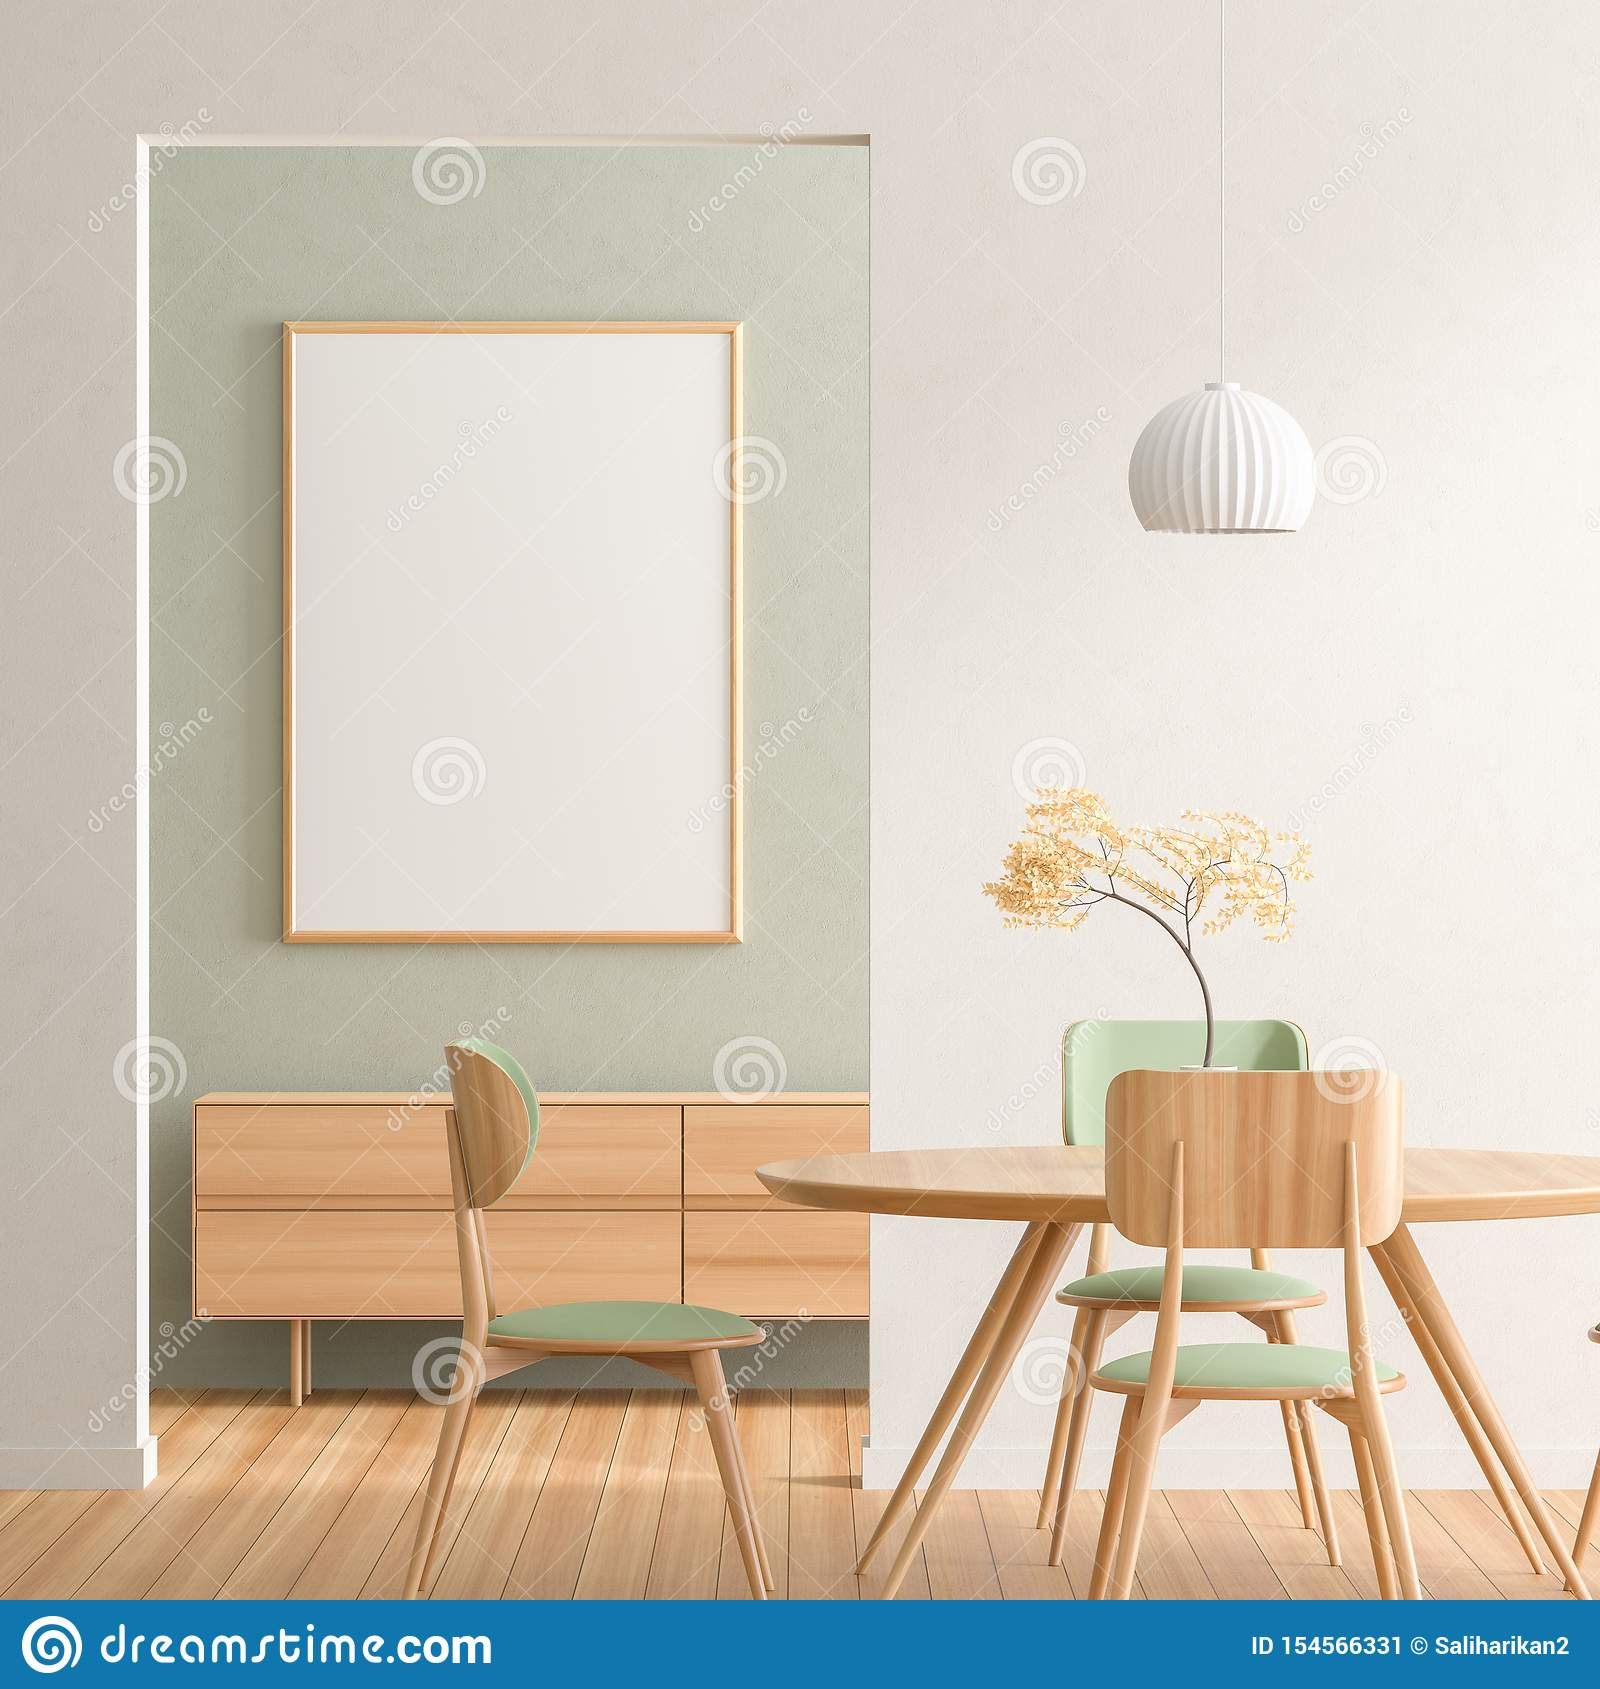 Mock Up Poster Frame In Scandinavian Style Dining Room With Wooden Chairs And Table Minimalist Dining Room Design 3d Stock Illustration Illustration Of Estate House 154566331